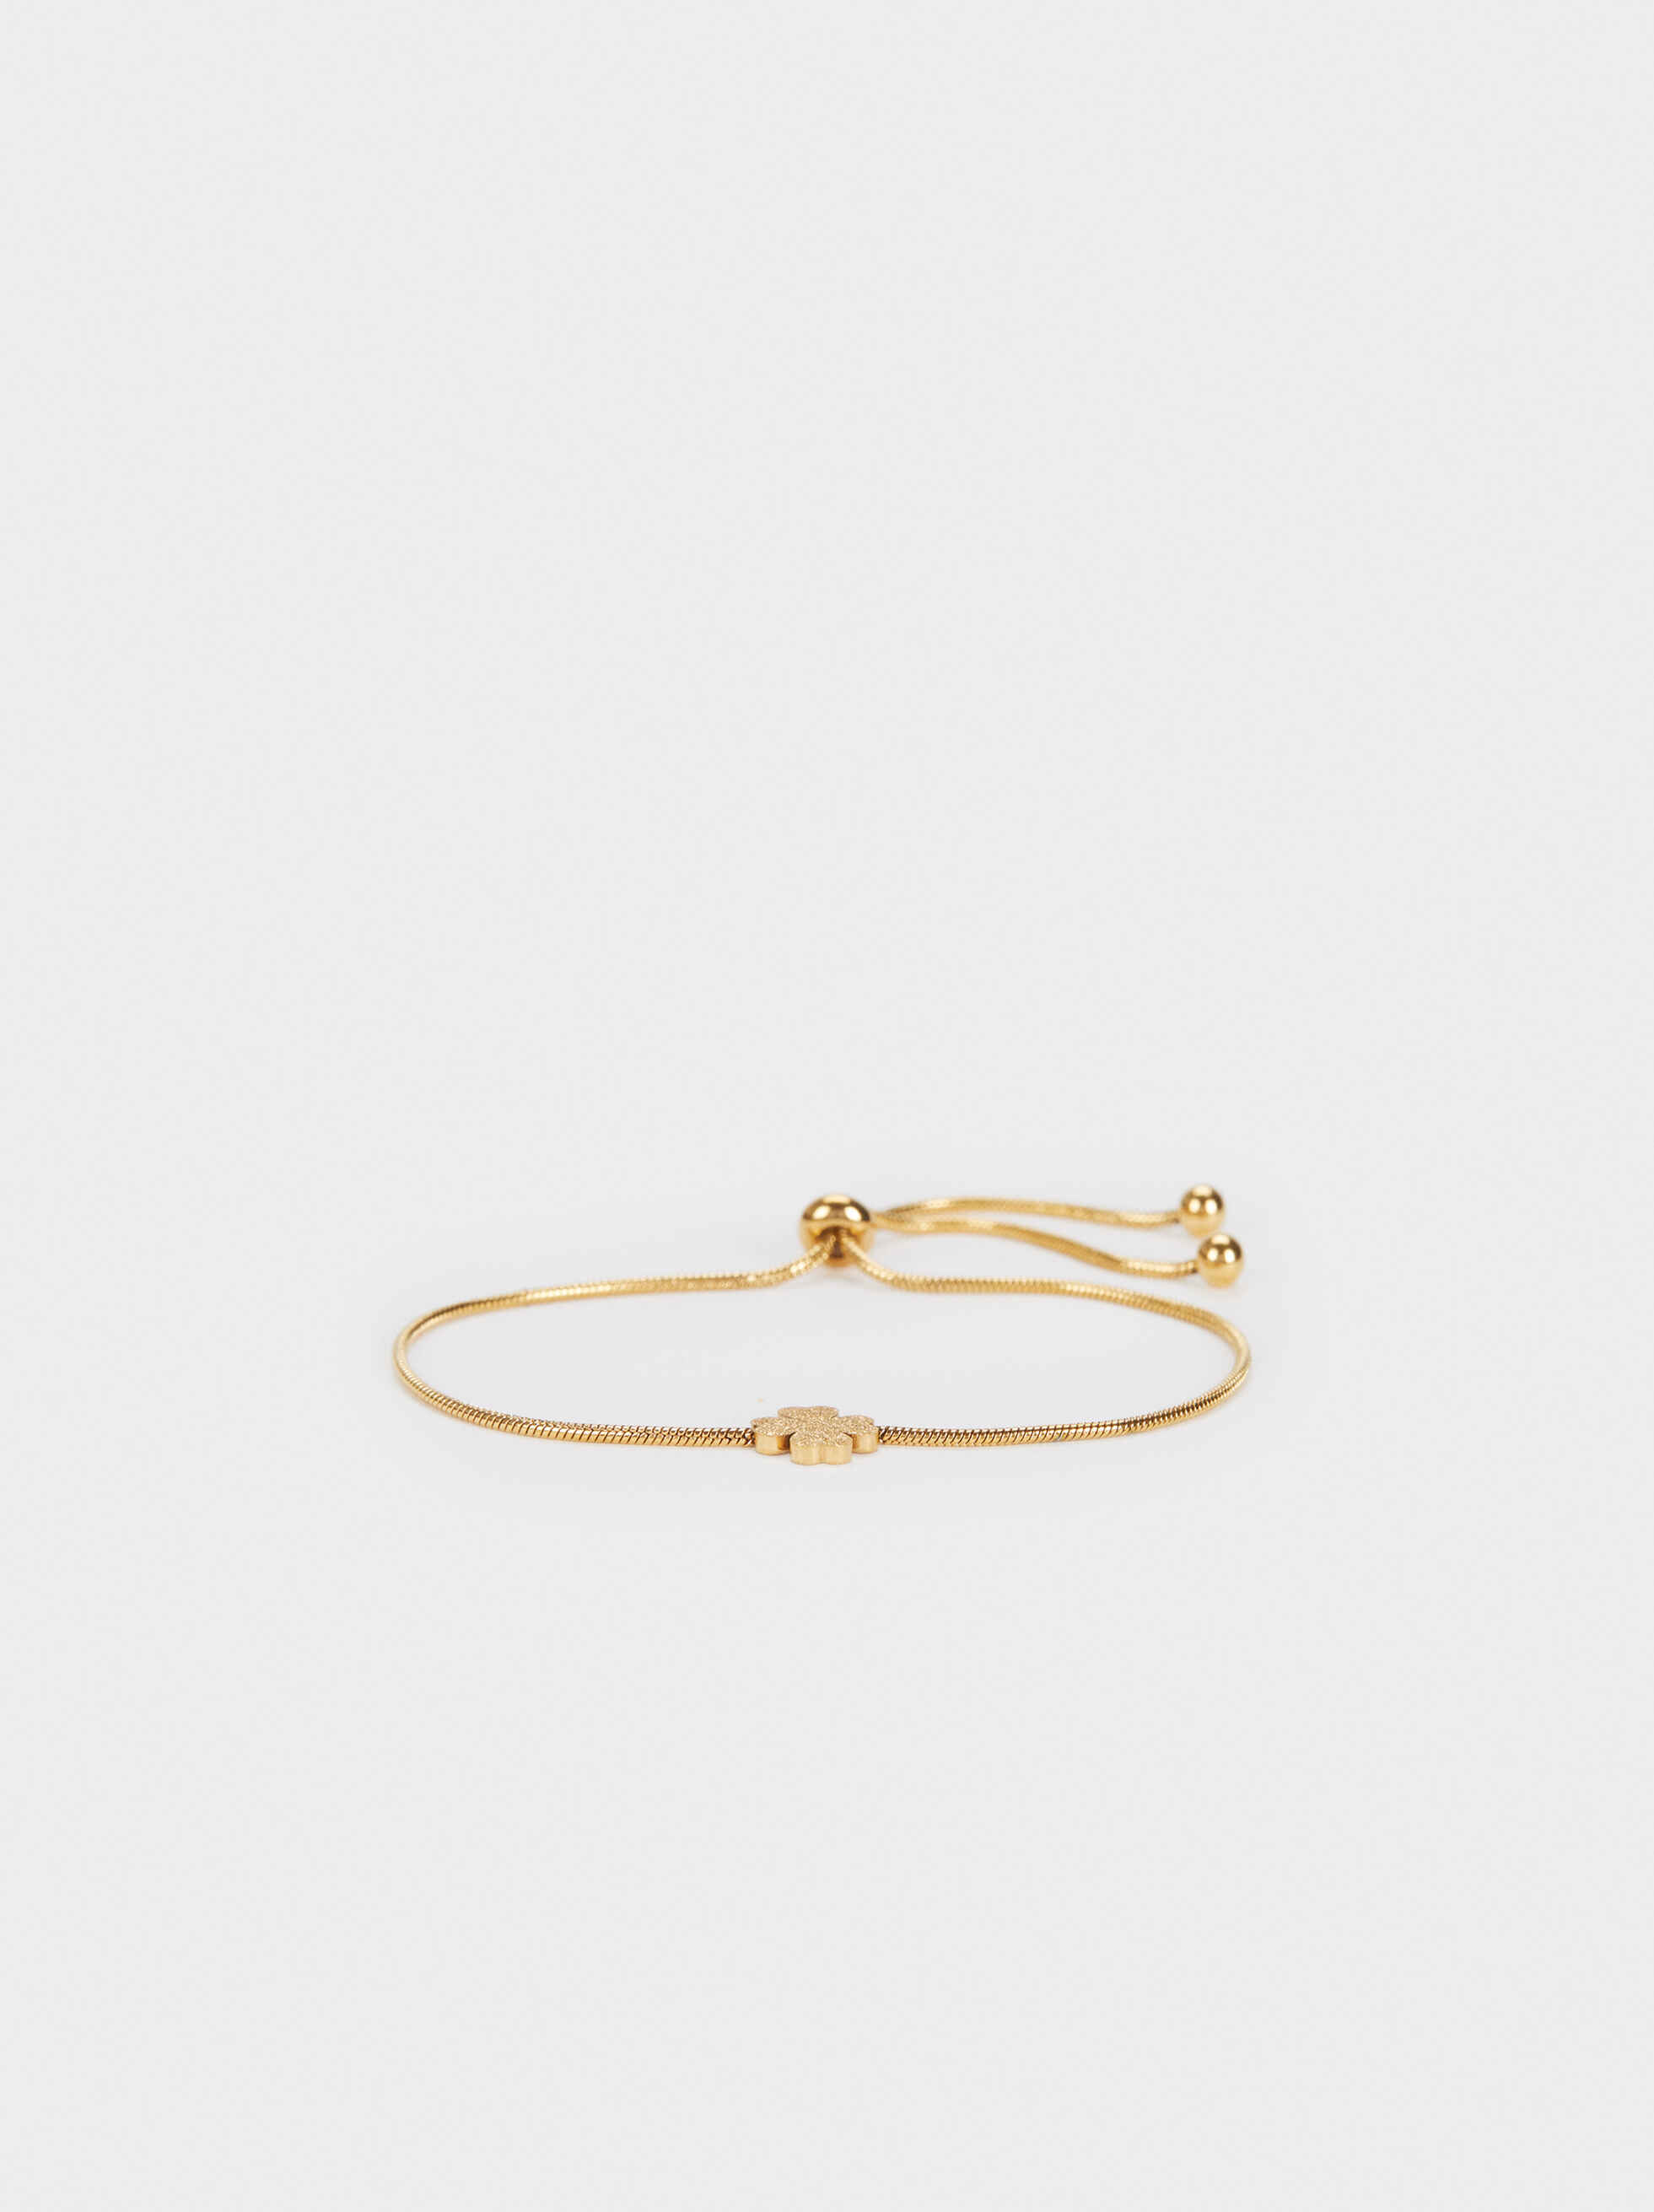 Stainless Steel Gold Adjustable Bracelet With Clover, , hi-res